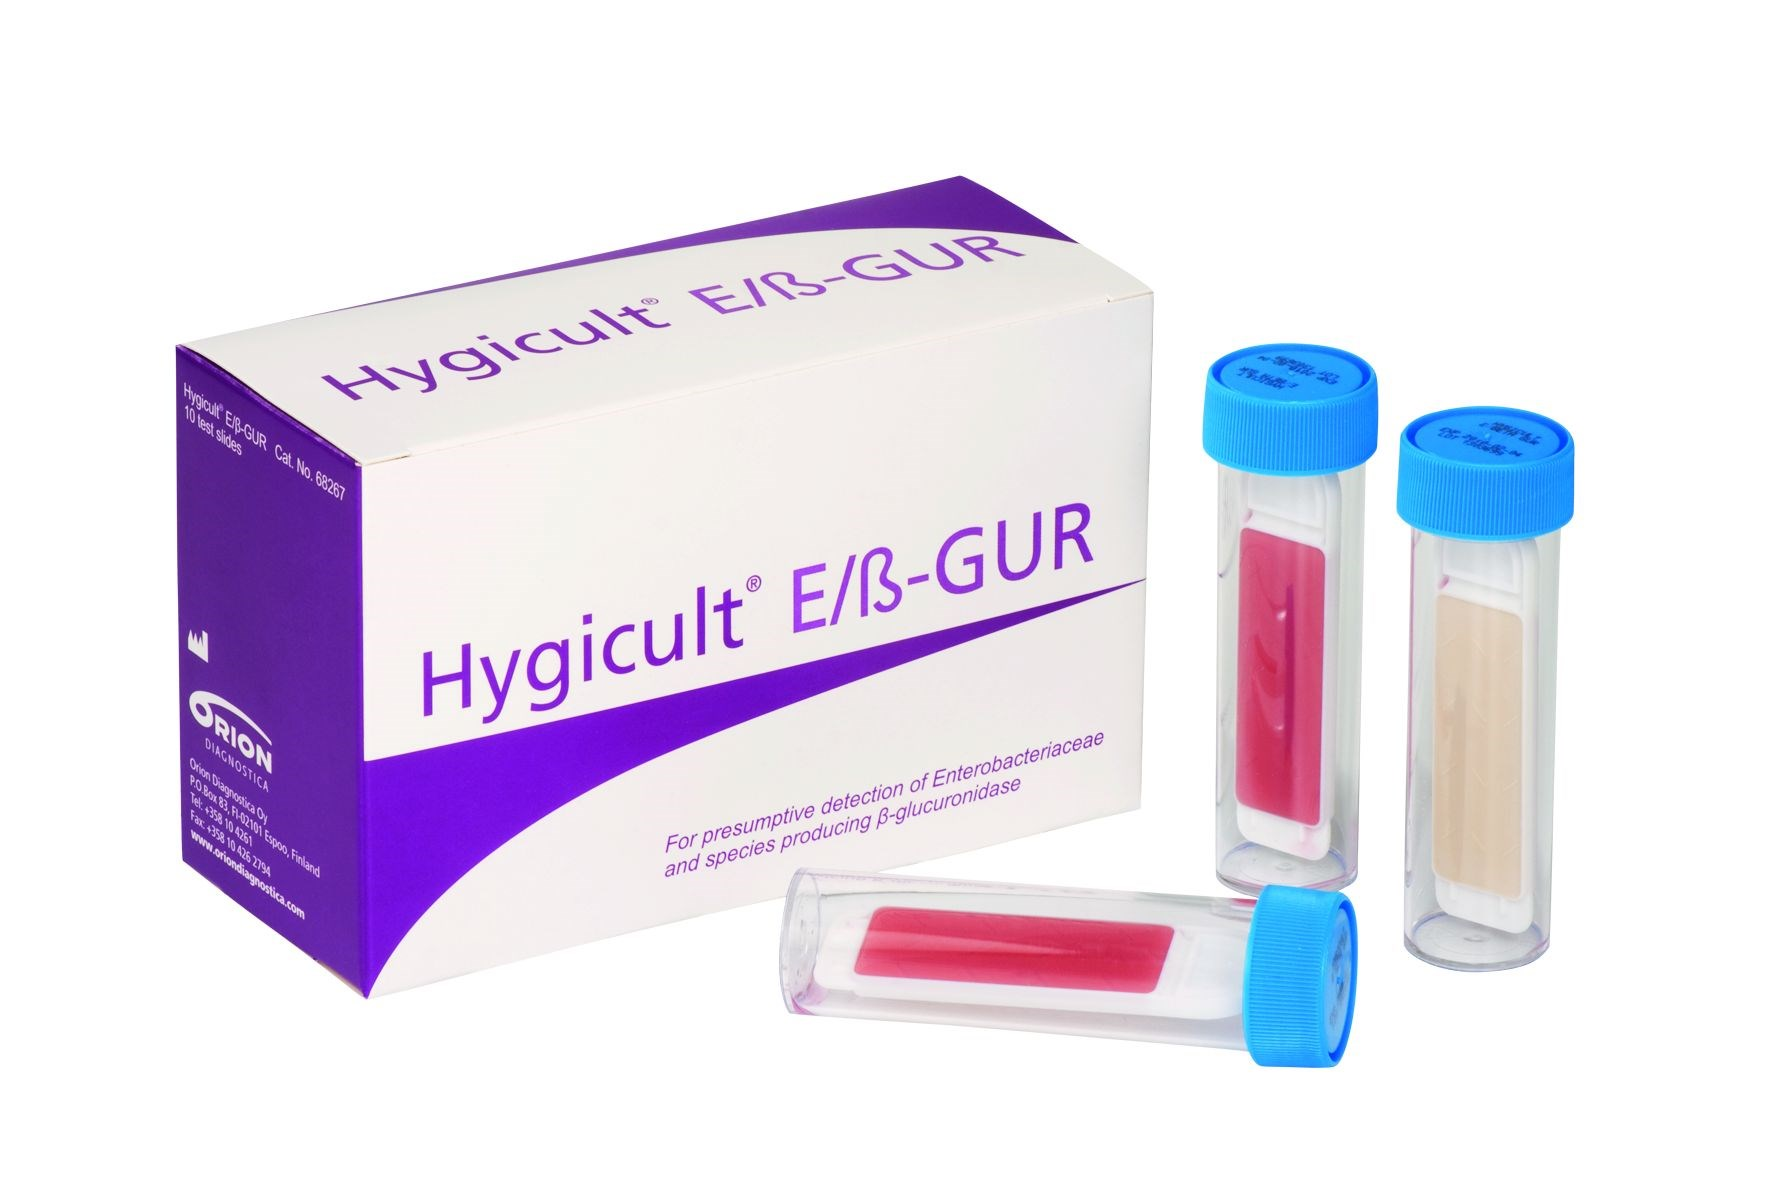 Hygicult E/β-GUR for Enterobacteriaceae/E.coli